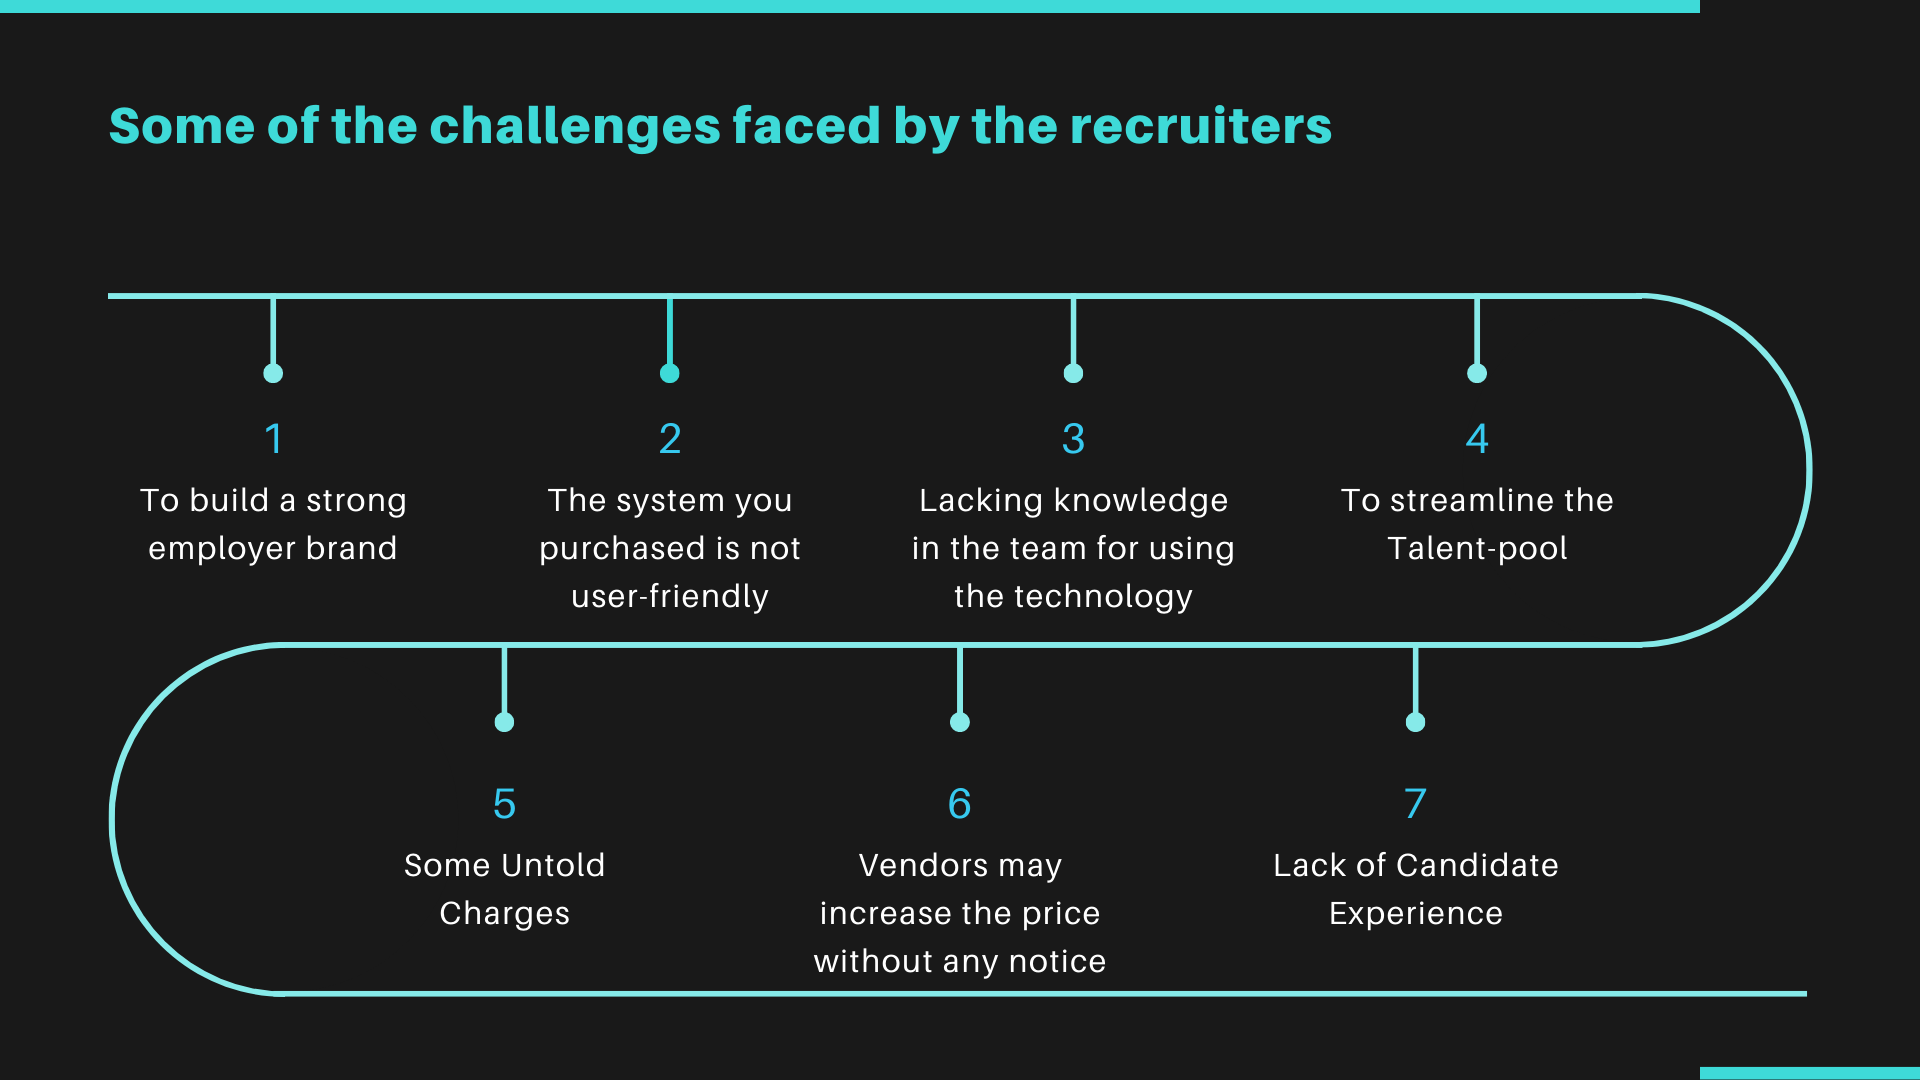 challenge faced by recruiter